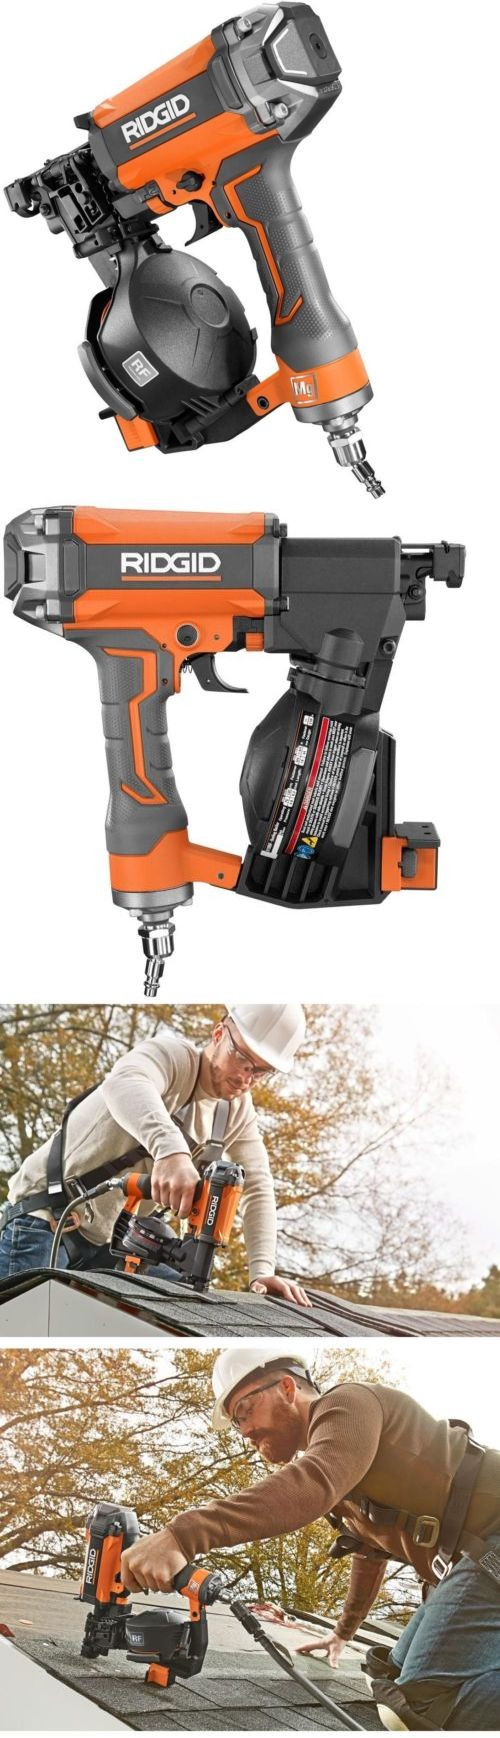 Roofing Guns 42243: Ridgid 15 Degree 1-3 4 In. Coil Roofing Nailer -> BUY IT NOW ONLY: $267.66 on eBay!